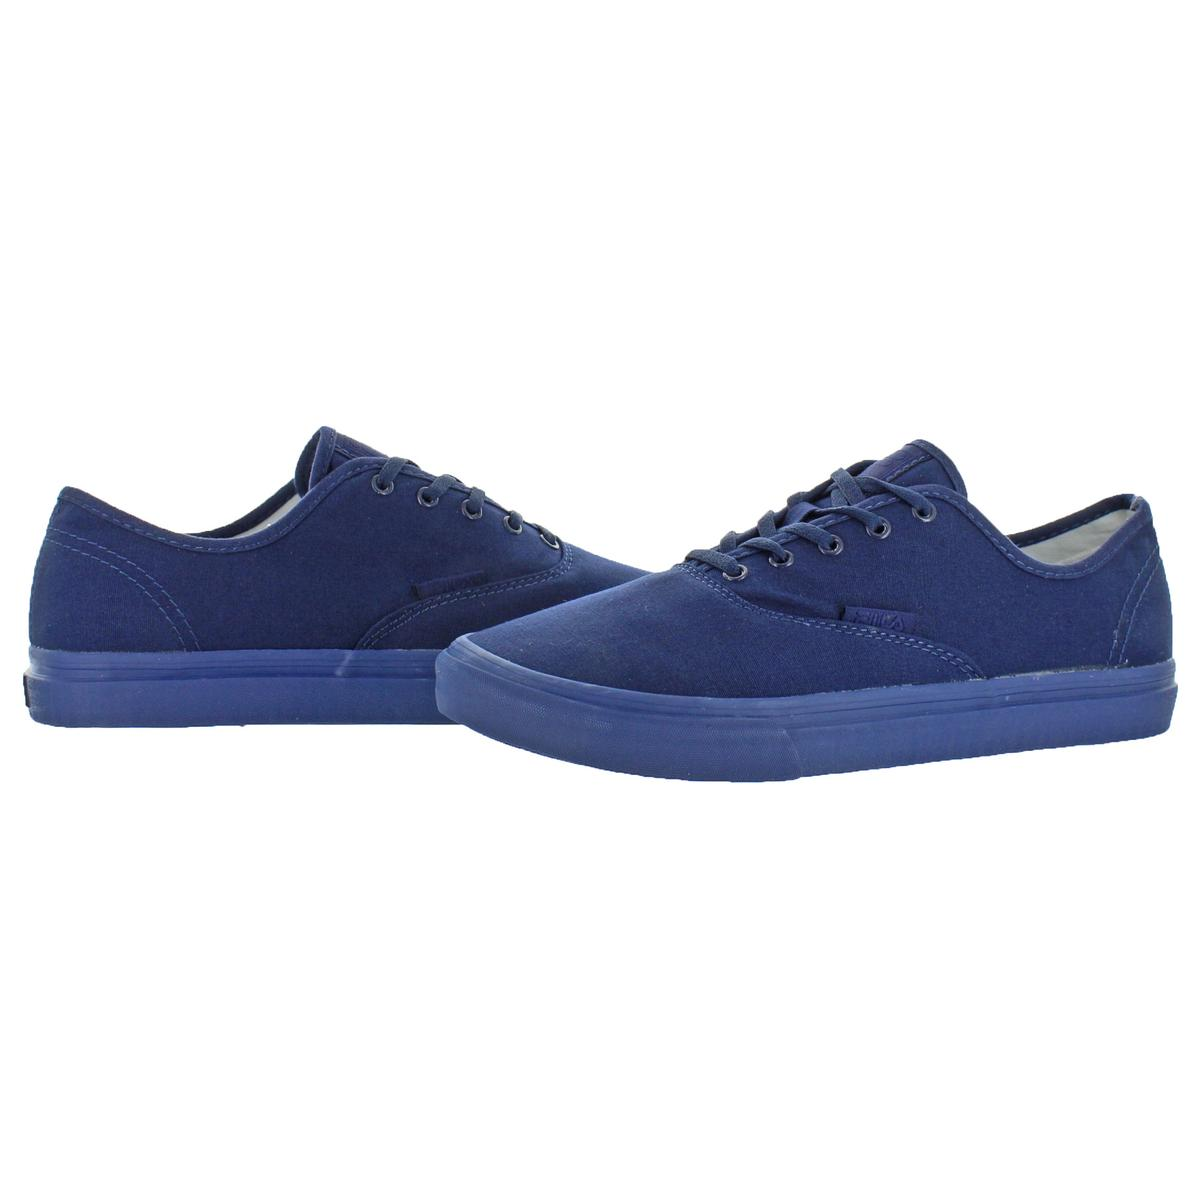 Fila-Classic-Canvas-Men-039-s-Fashion-Skate-Sneakers-Shoes thumbnail 3